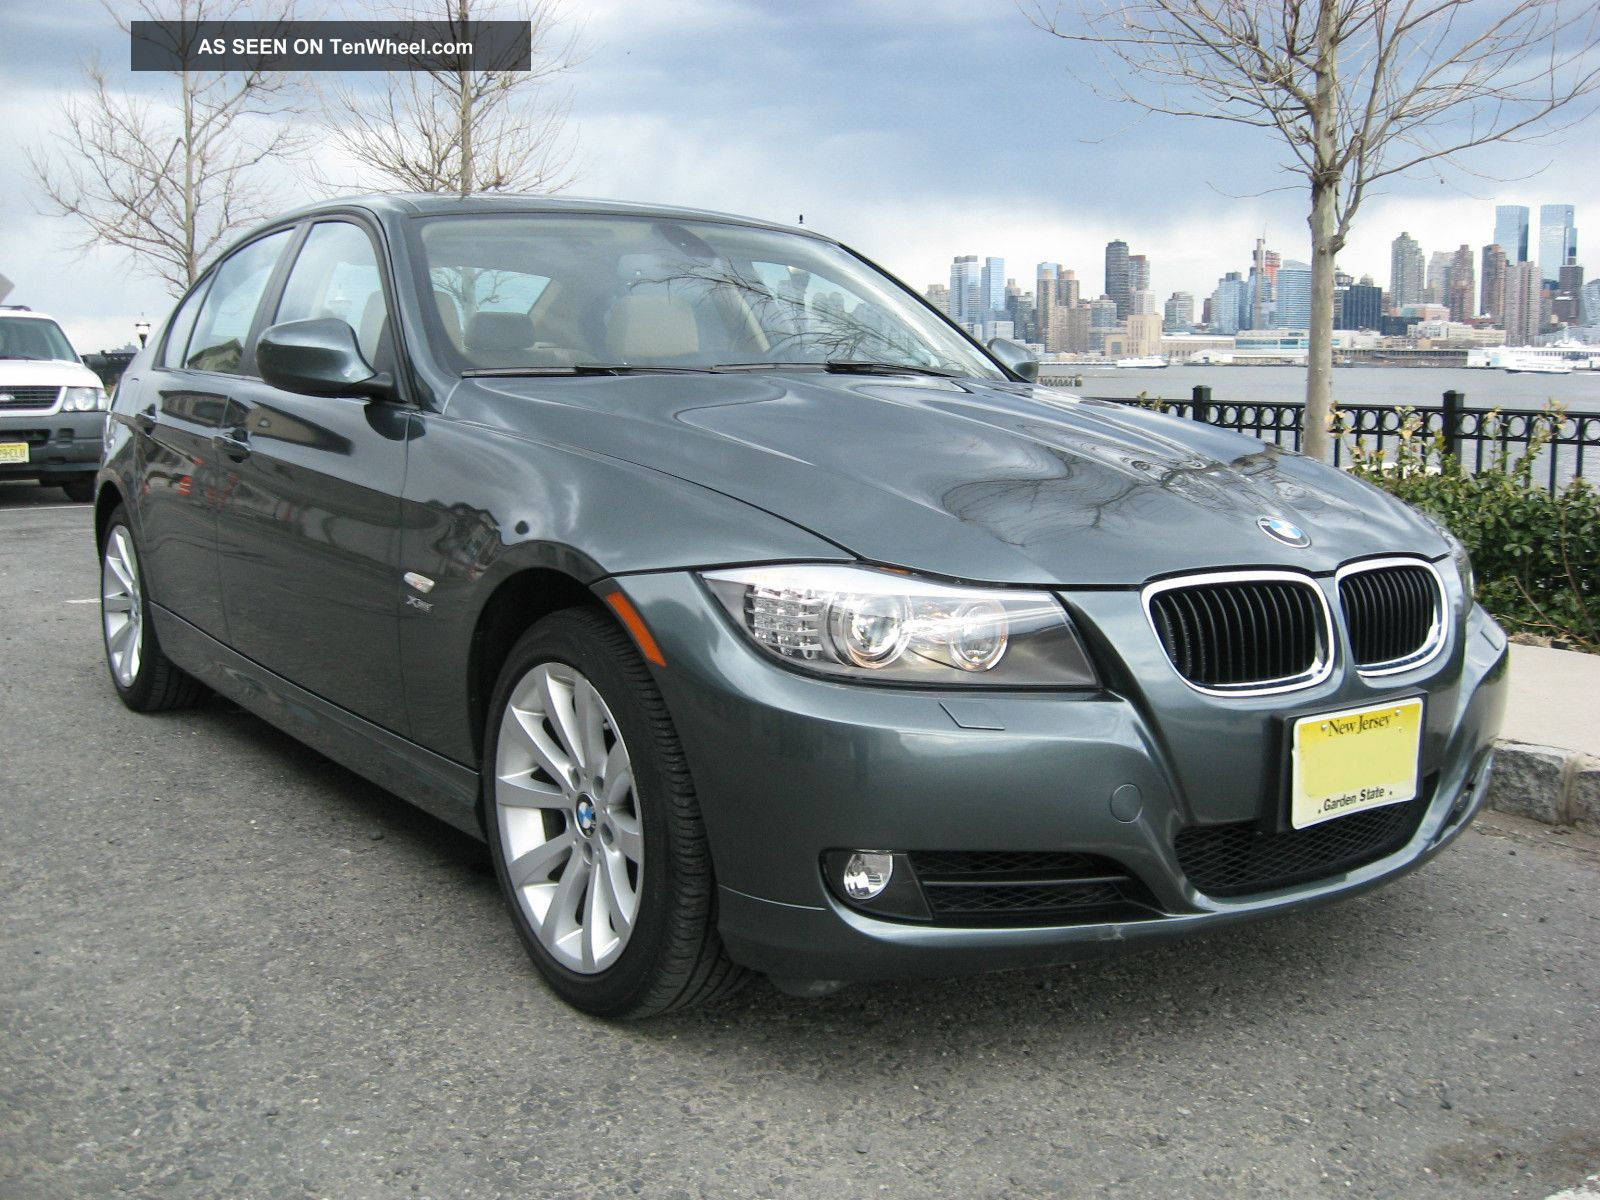 Bmw 328i Xdrive Touring 2011 Reviews Autos Post